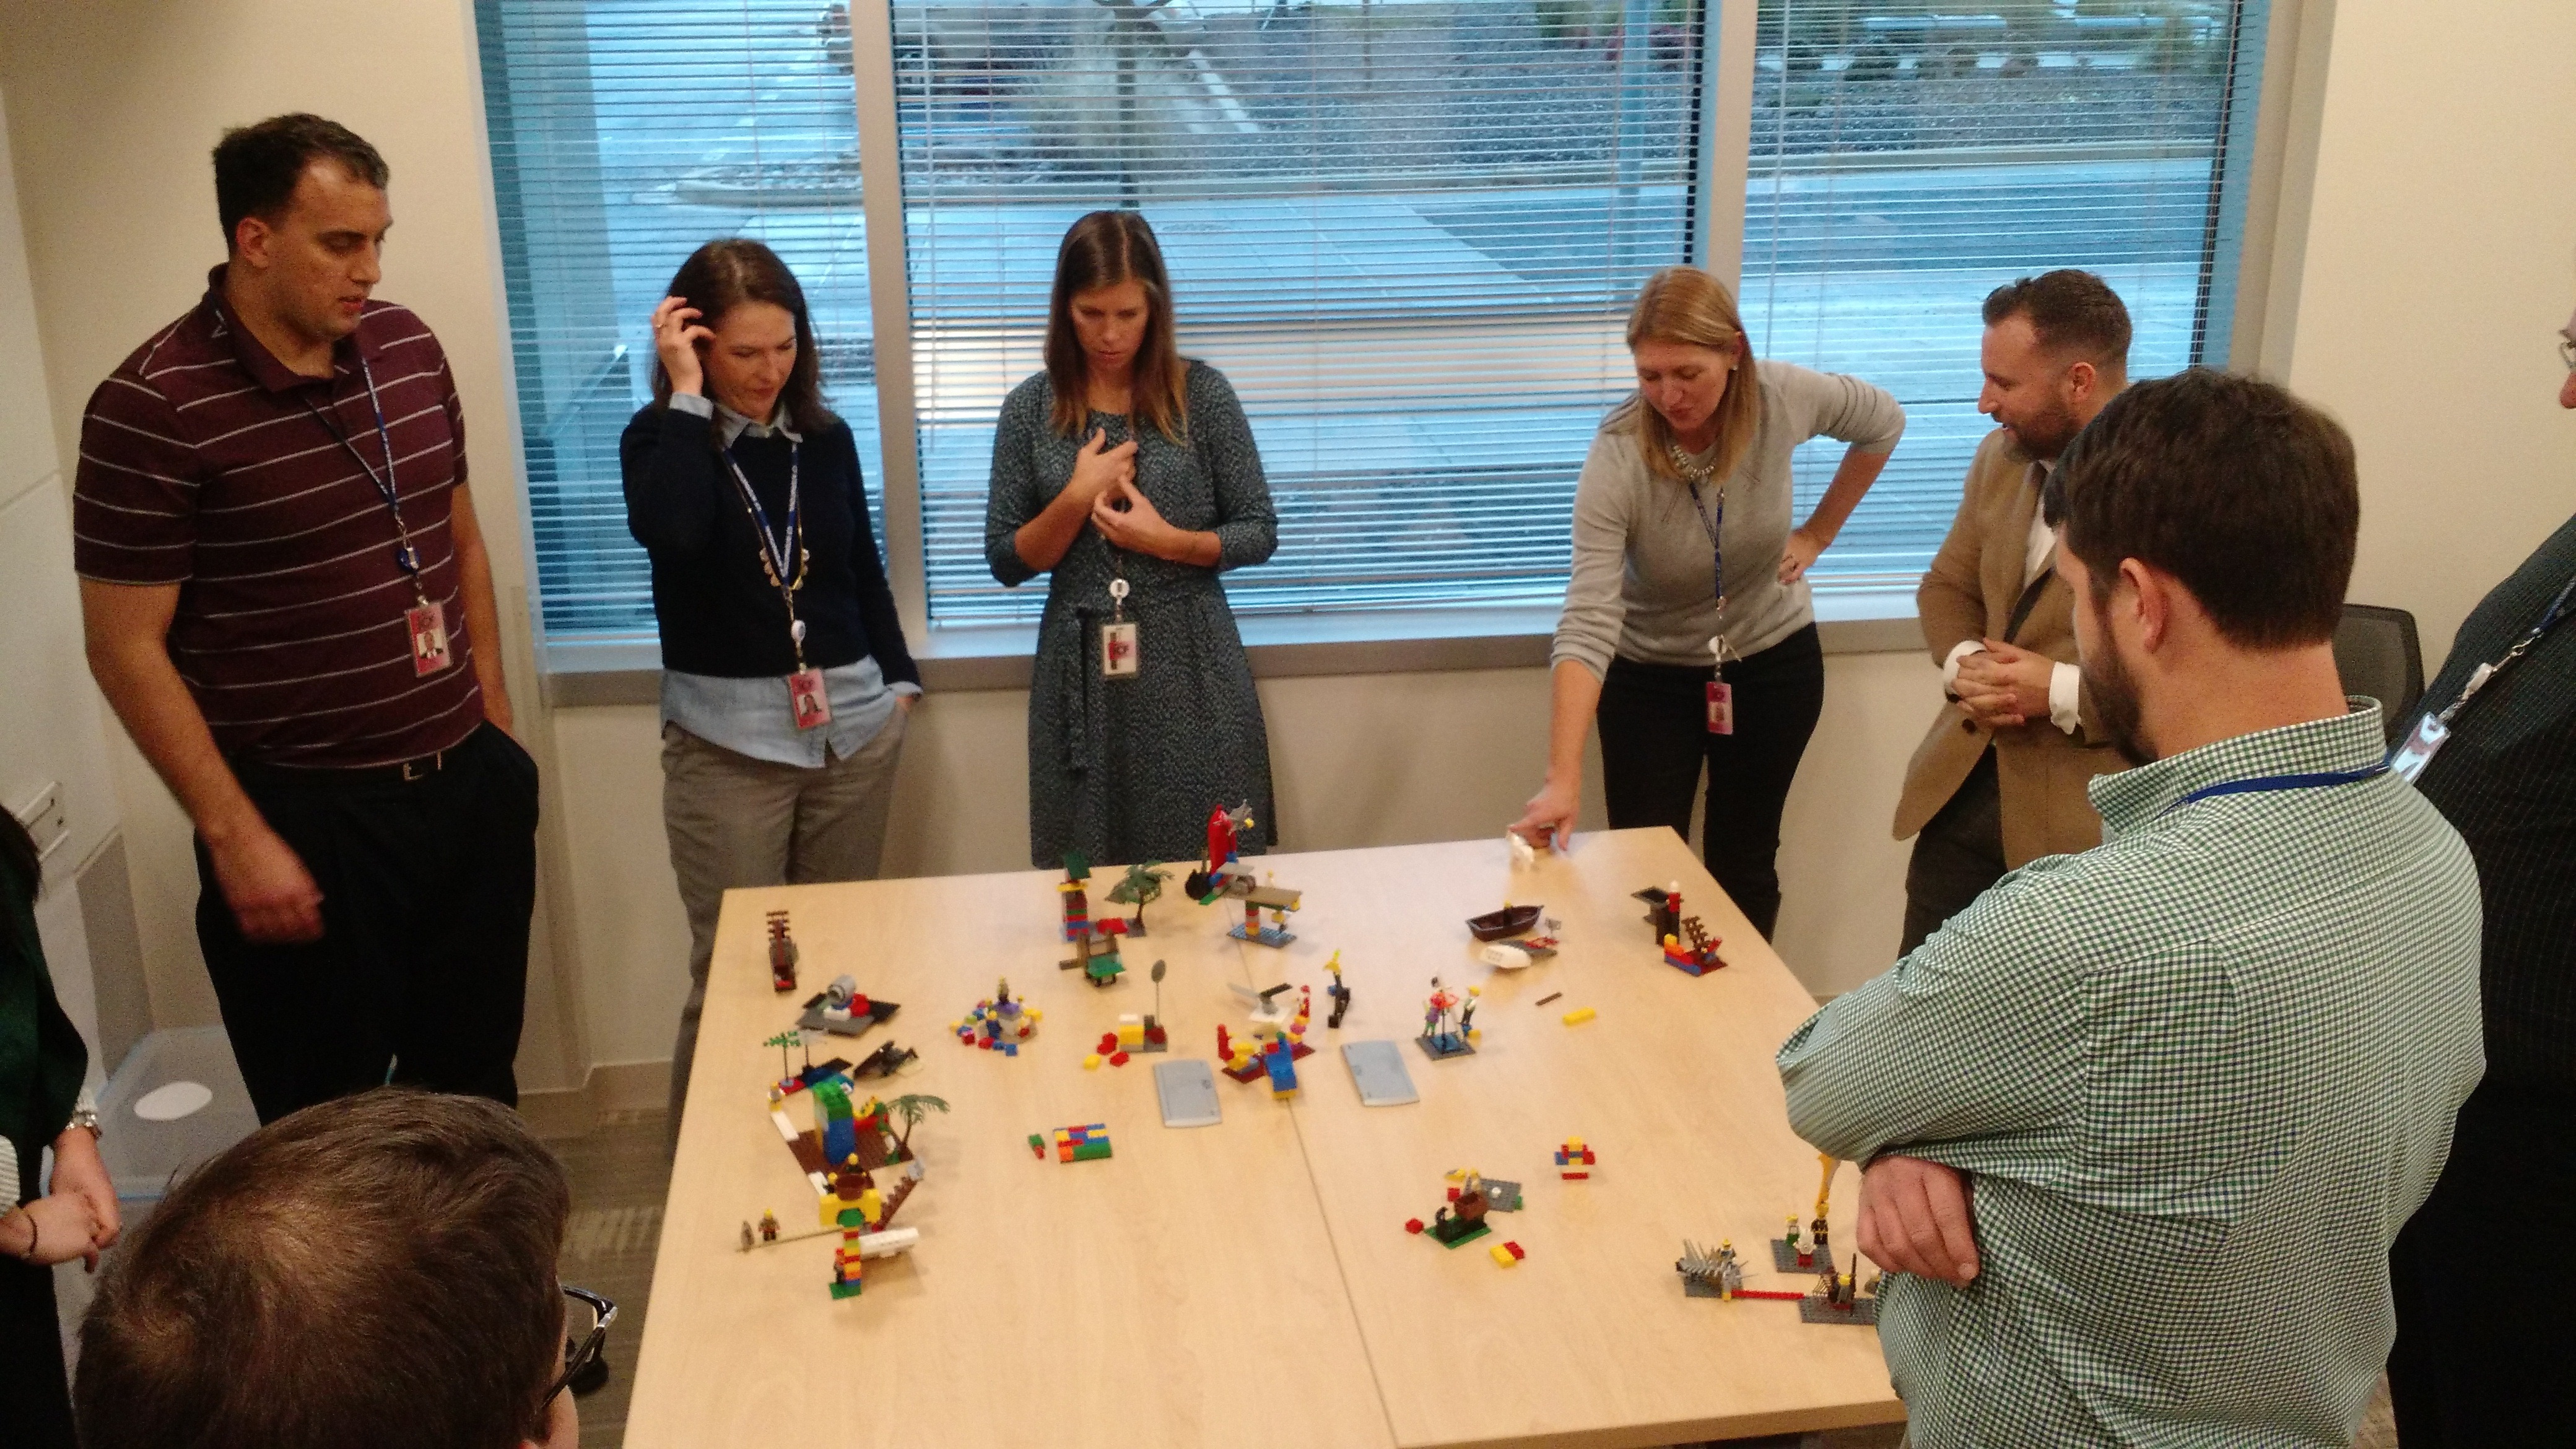 Picture of lego models and builders